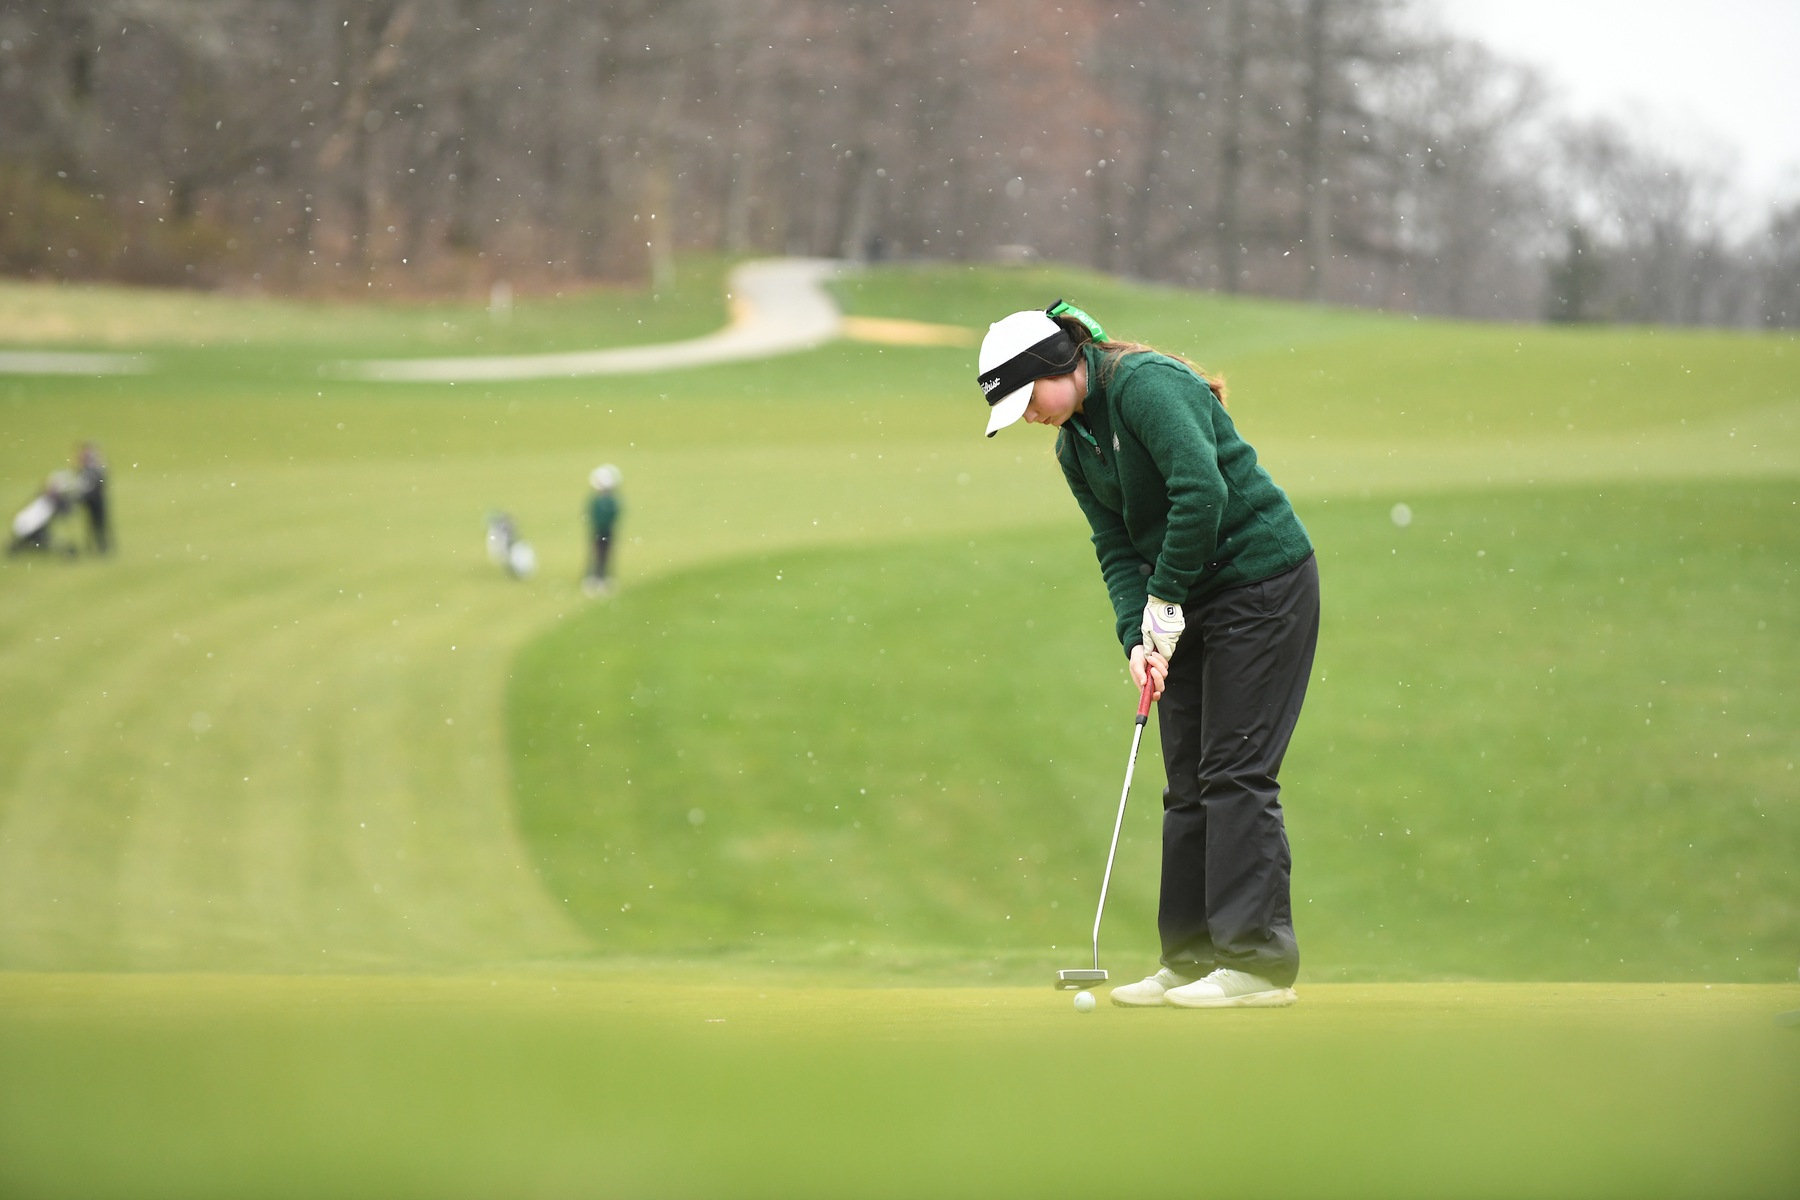 Rentz Shoots 78, Finishes Tied for First at Celebration Classic